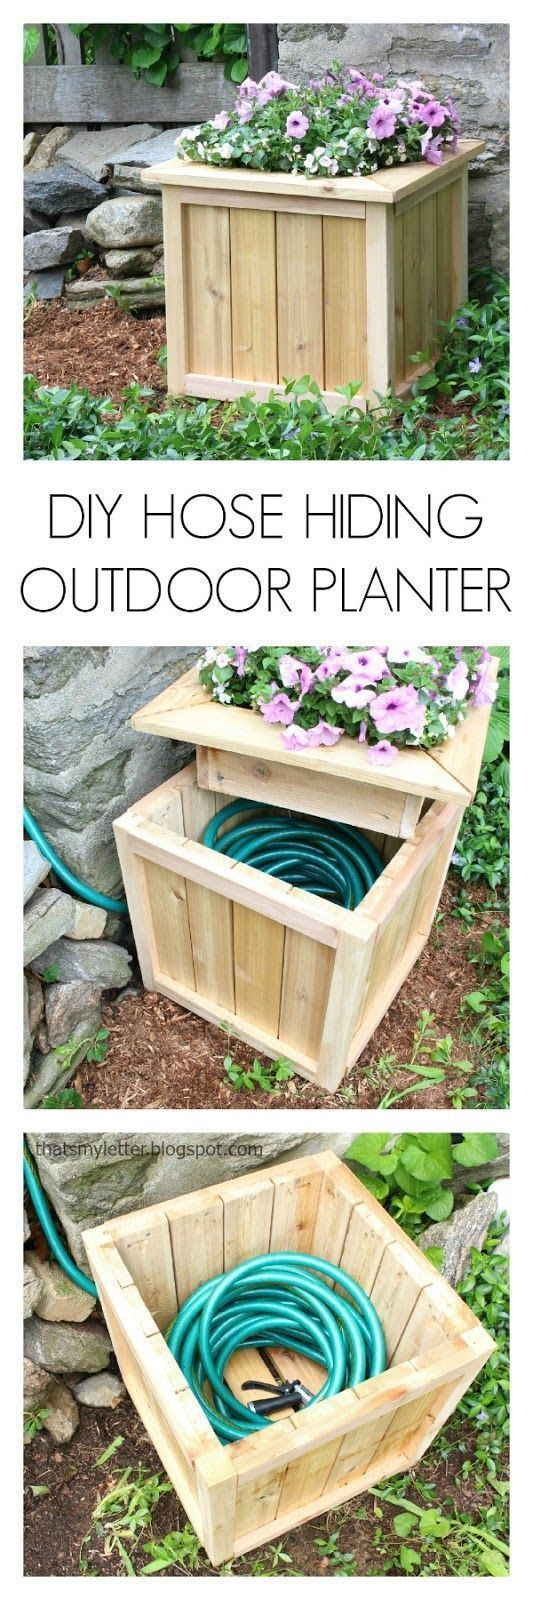 Delightful DIY Outdoor Planter With Hidden Hose Storage. Iu0027m So Happy To Meet This